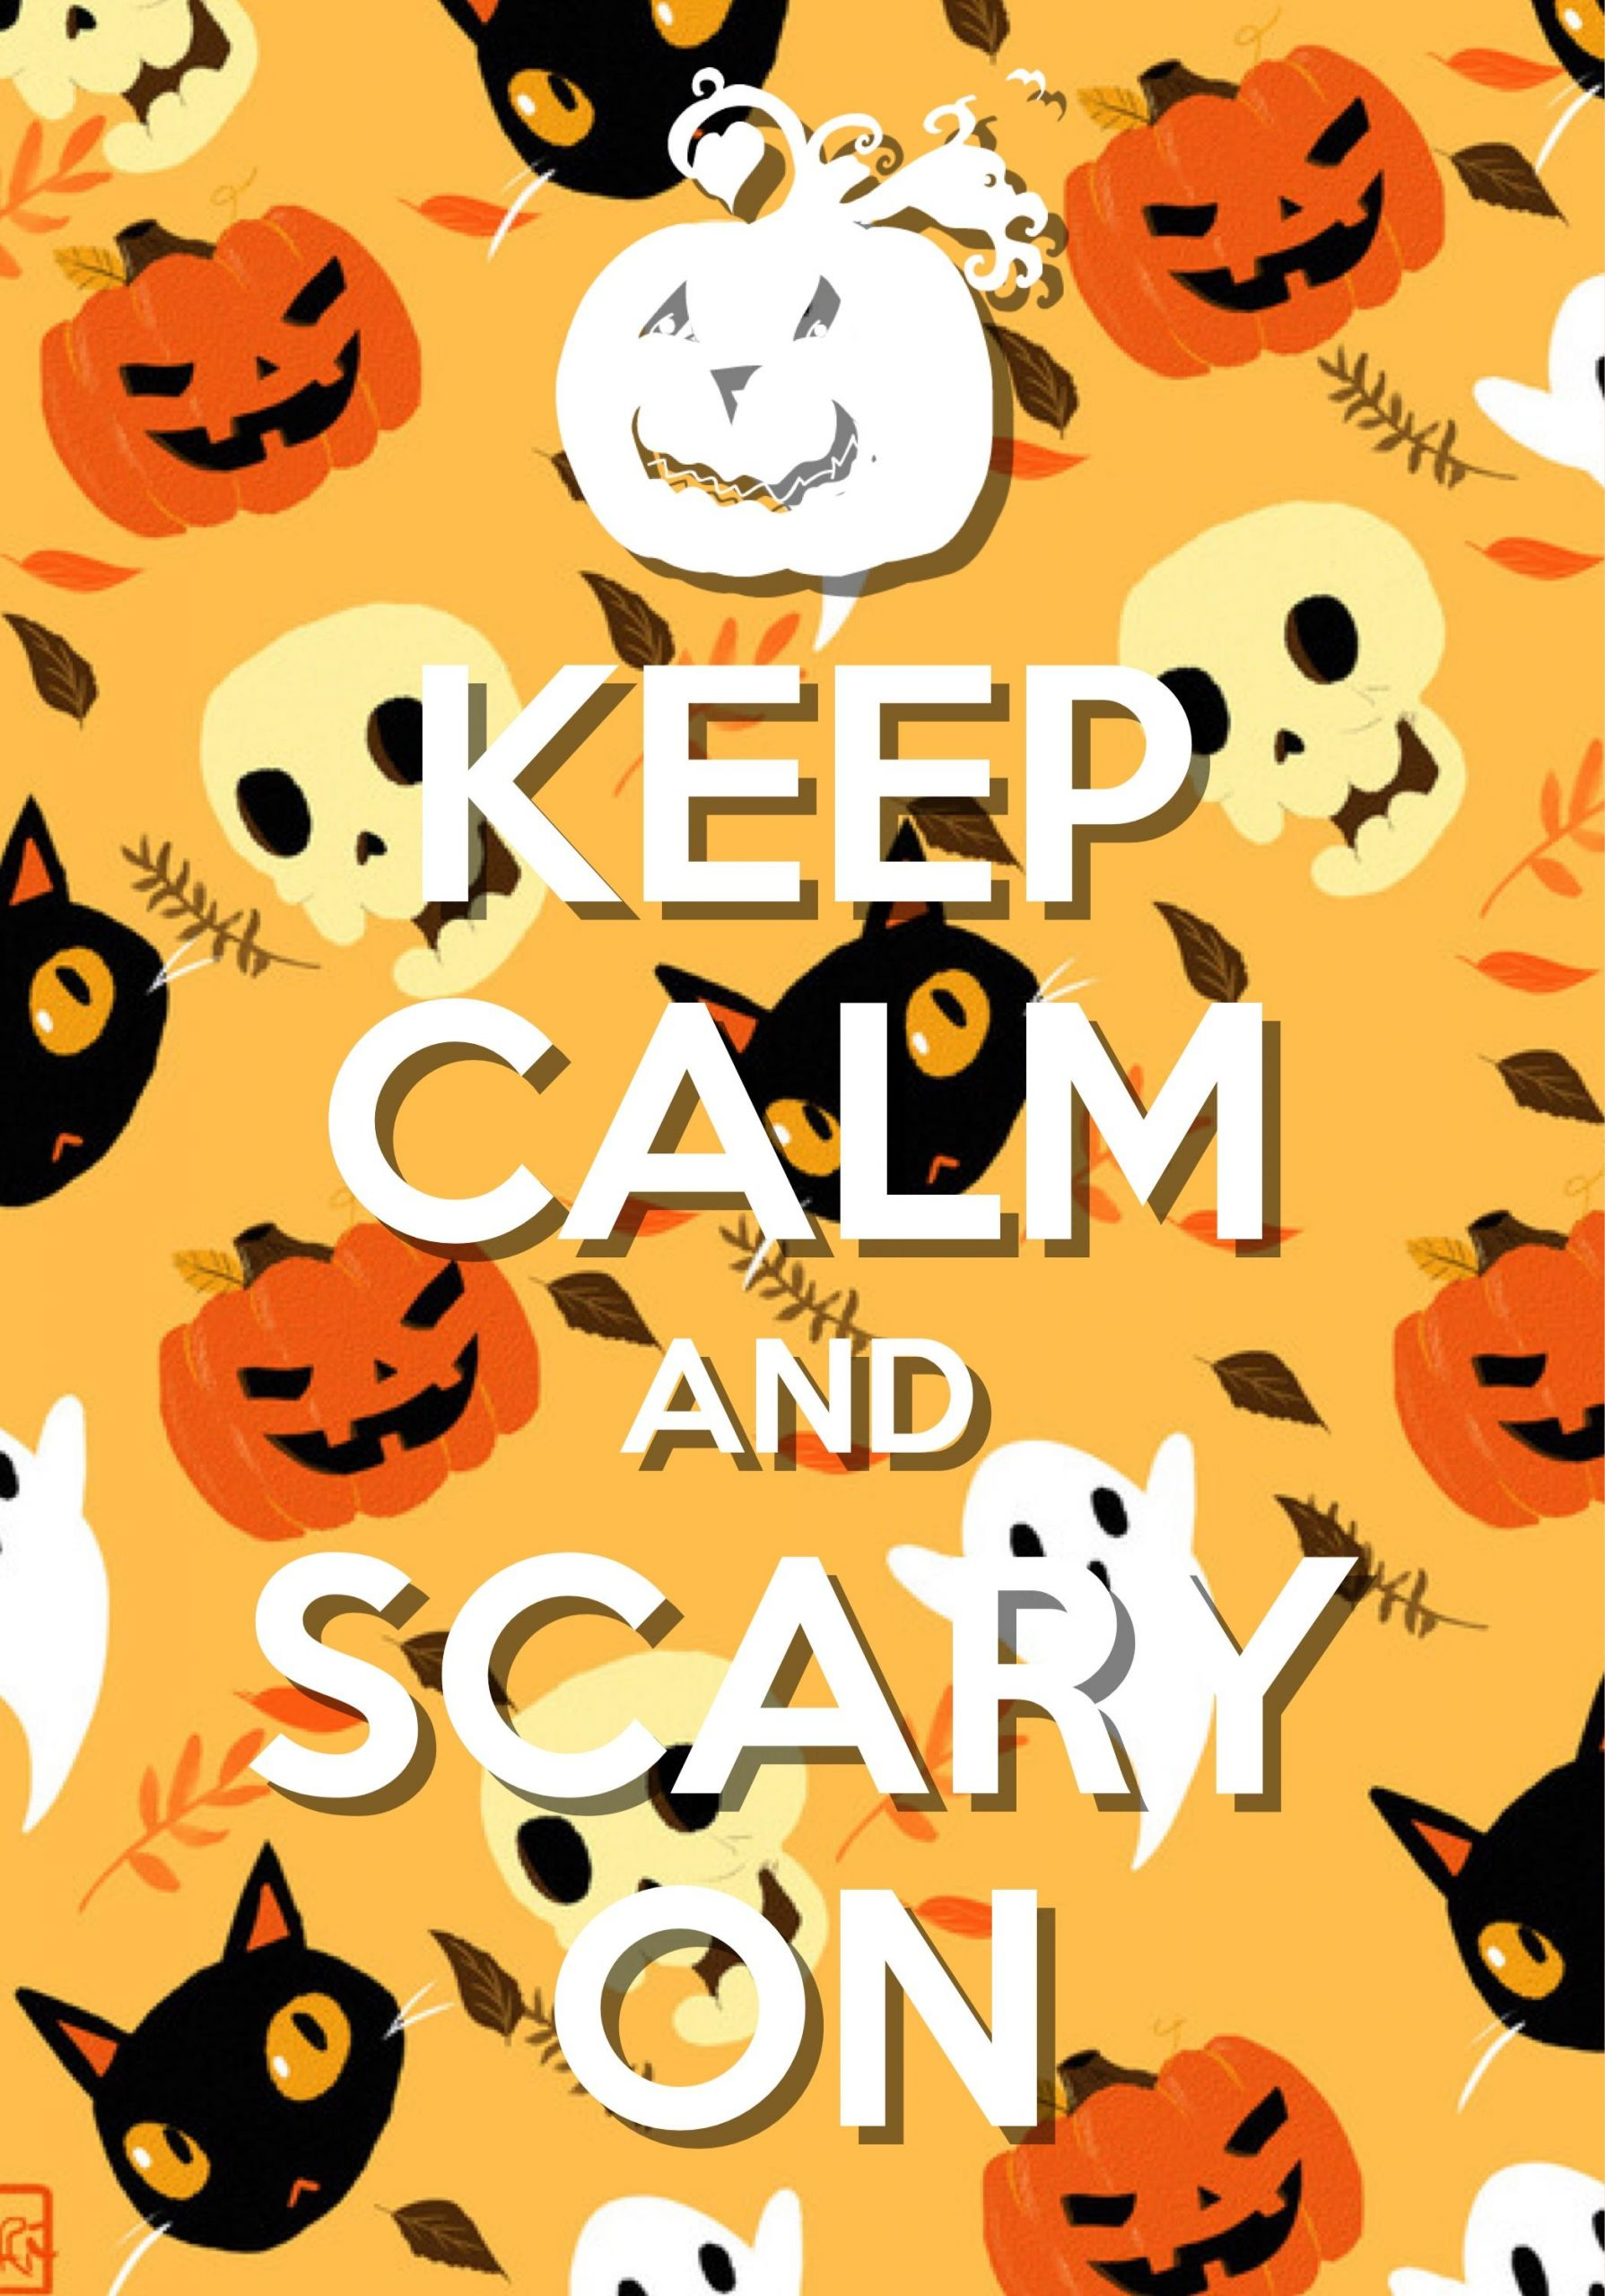 Halloween Wanddeko Frisch Keep Calm and Scary On Created with Keep Calm and Carry